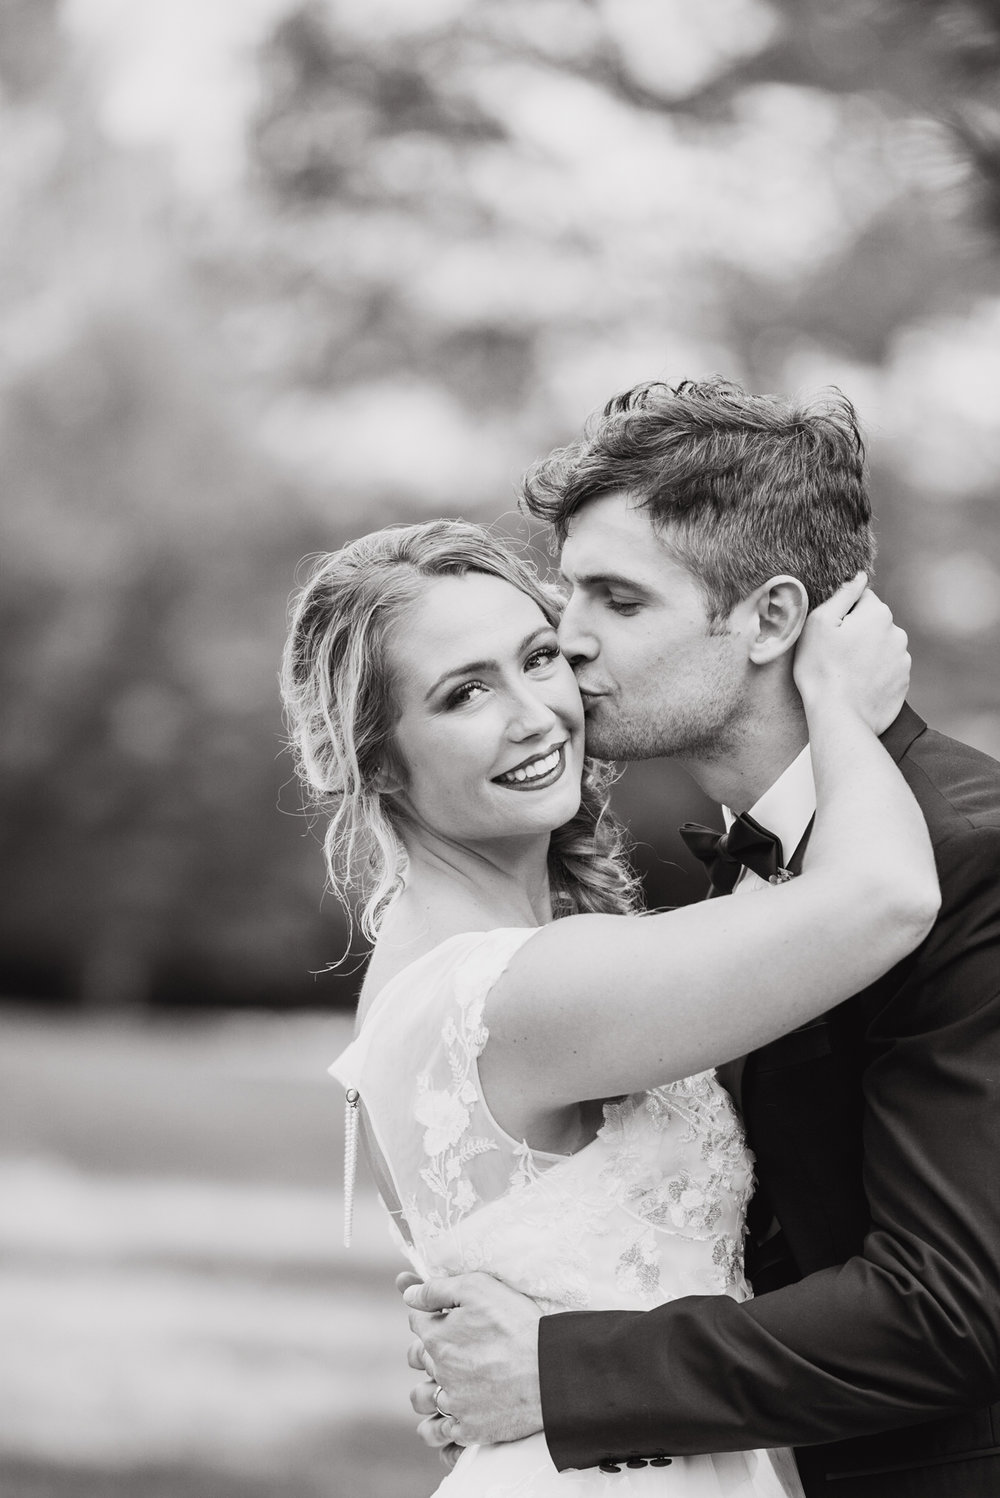 fun and playful black and white wedding photography